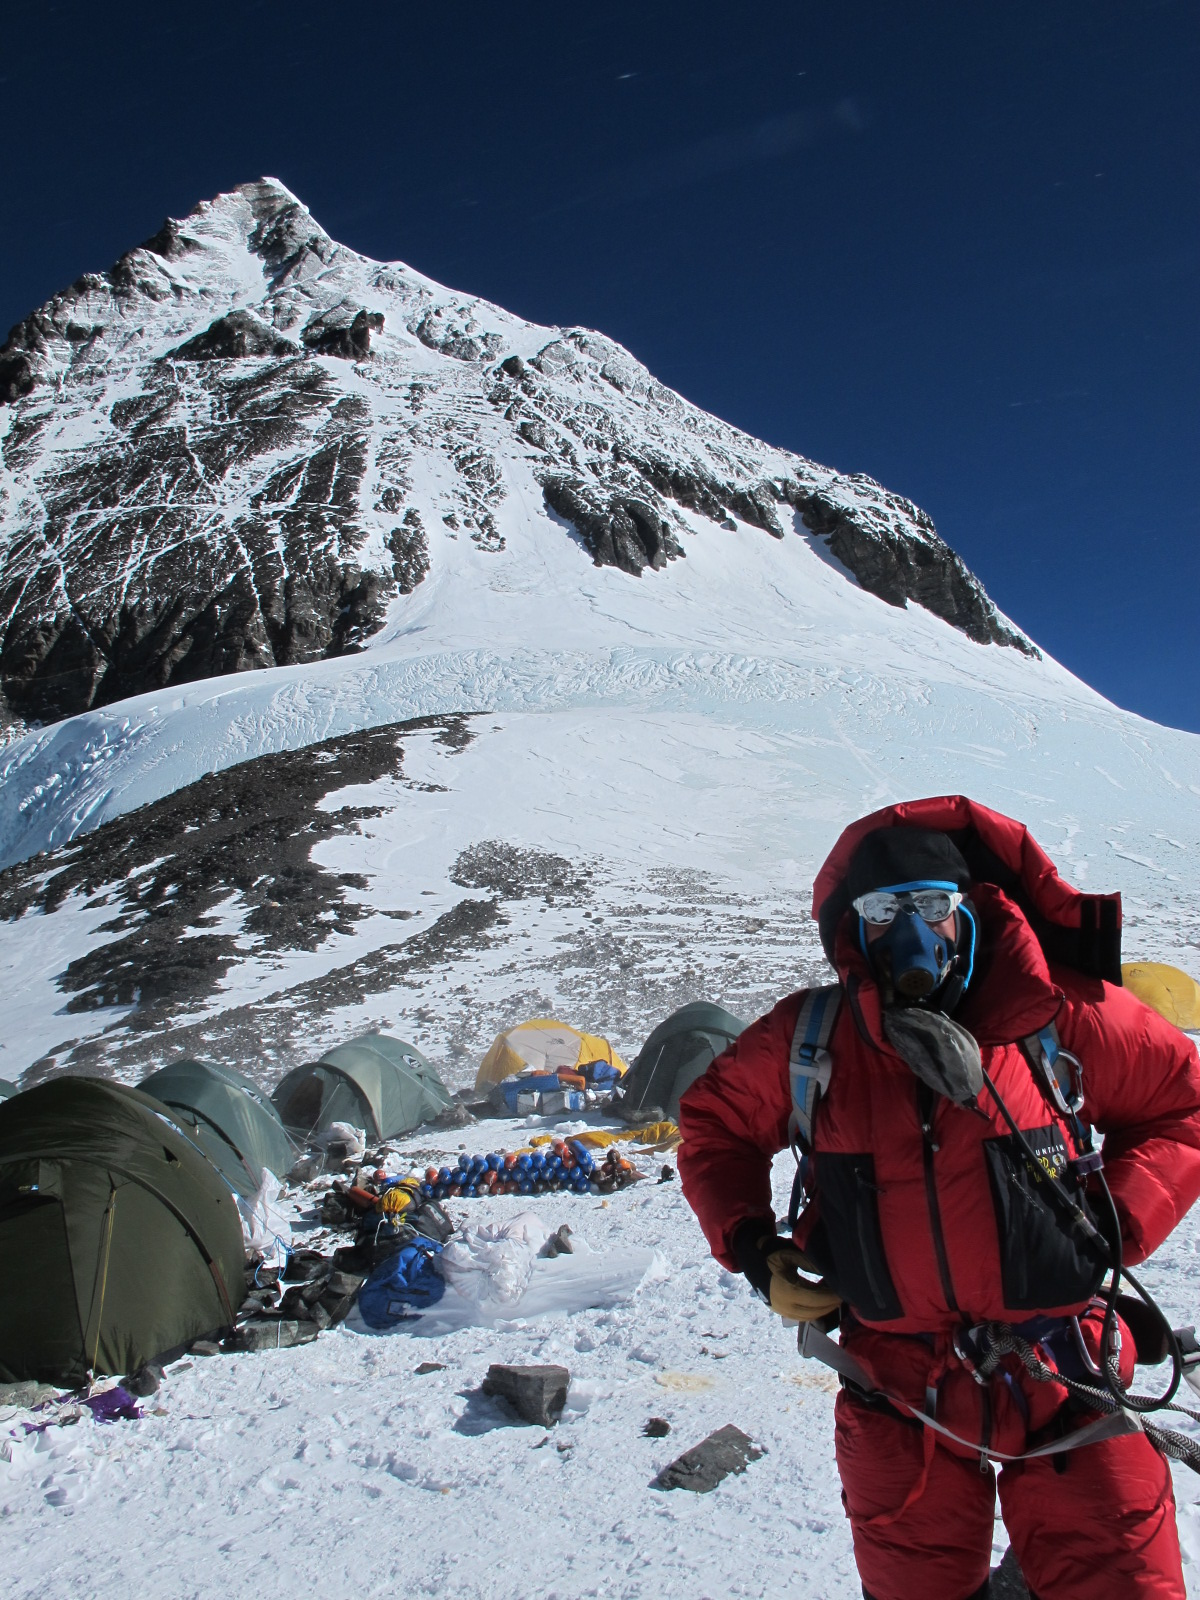 Mount Everest Expedition 2011 / Dispatch #16-25